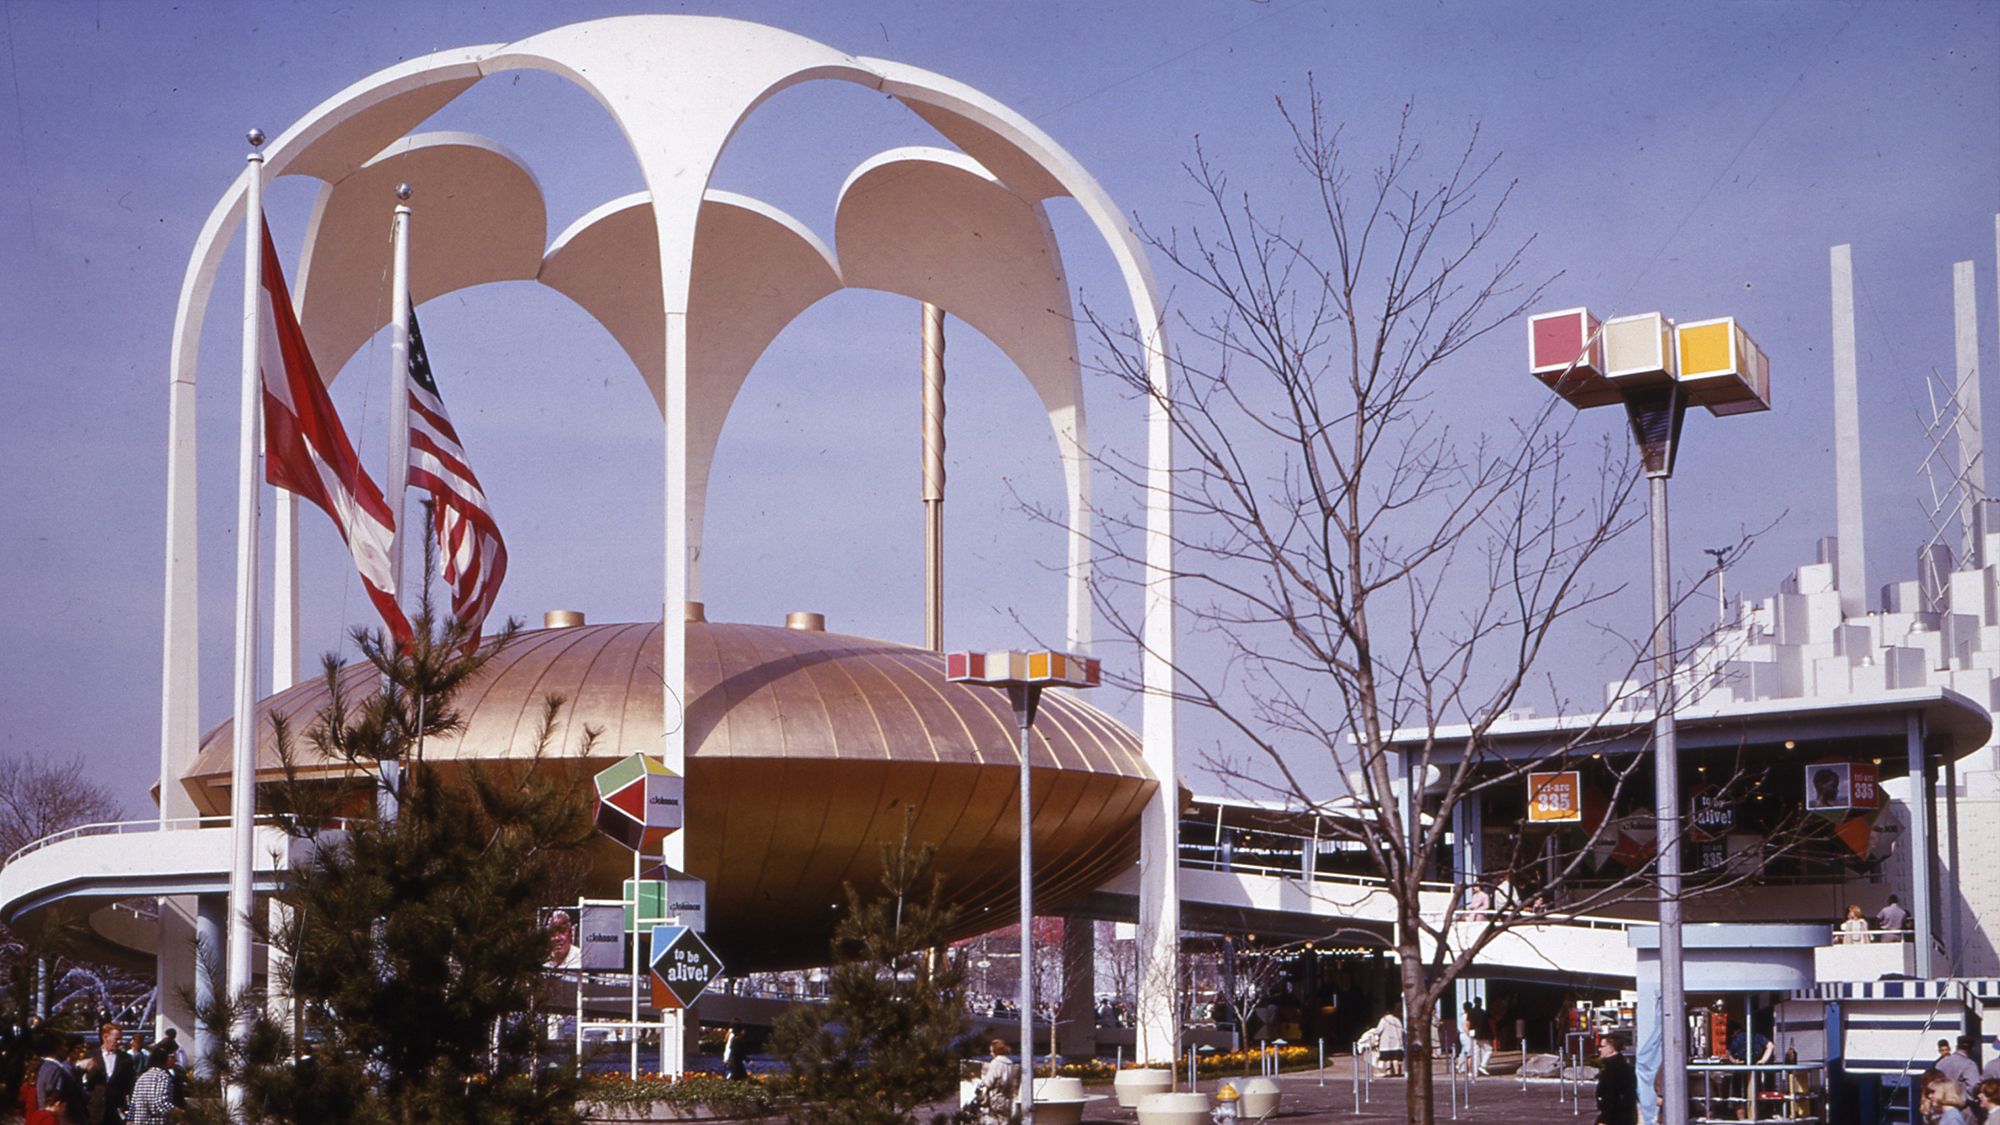 The 1964 SC Johnson Pavilion, now known as The Golden Rondelle Theatre